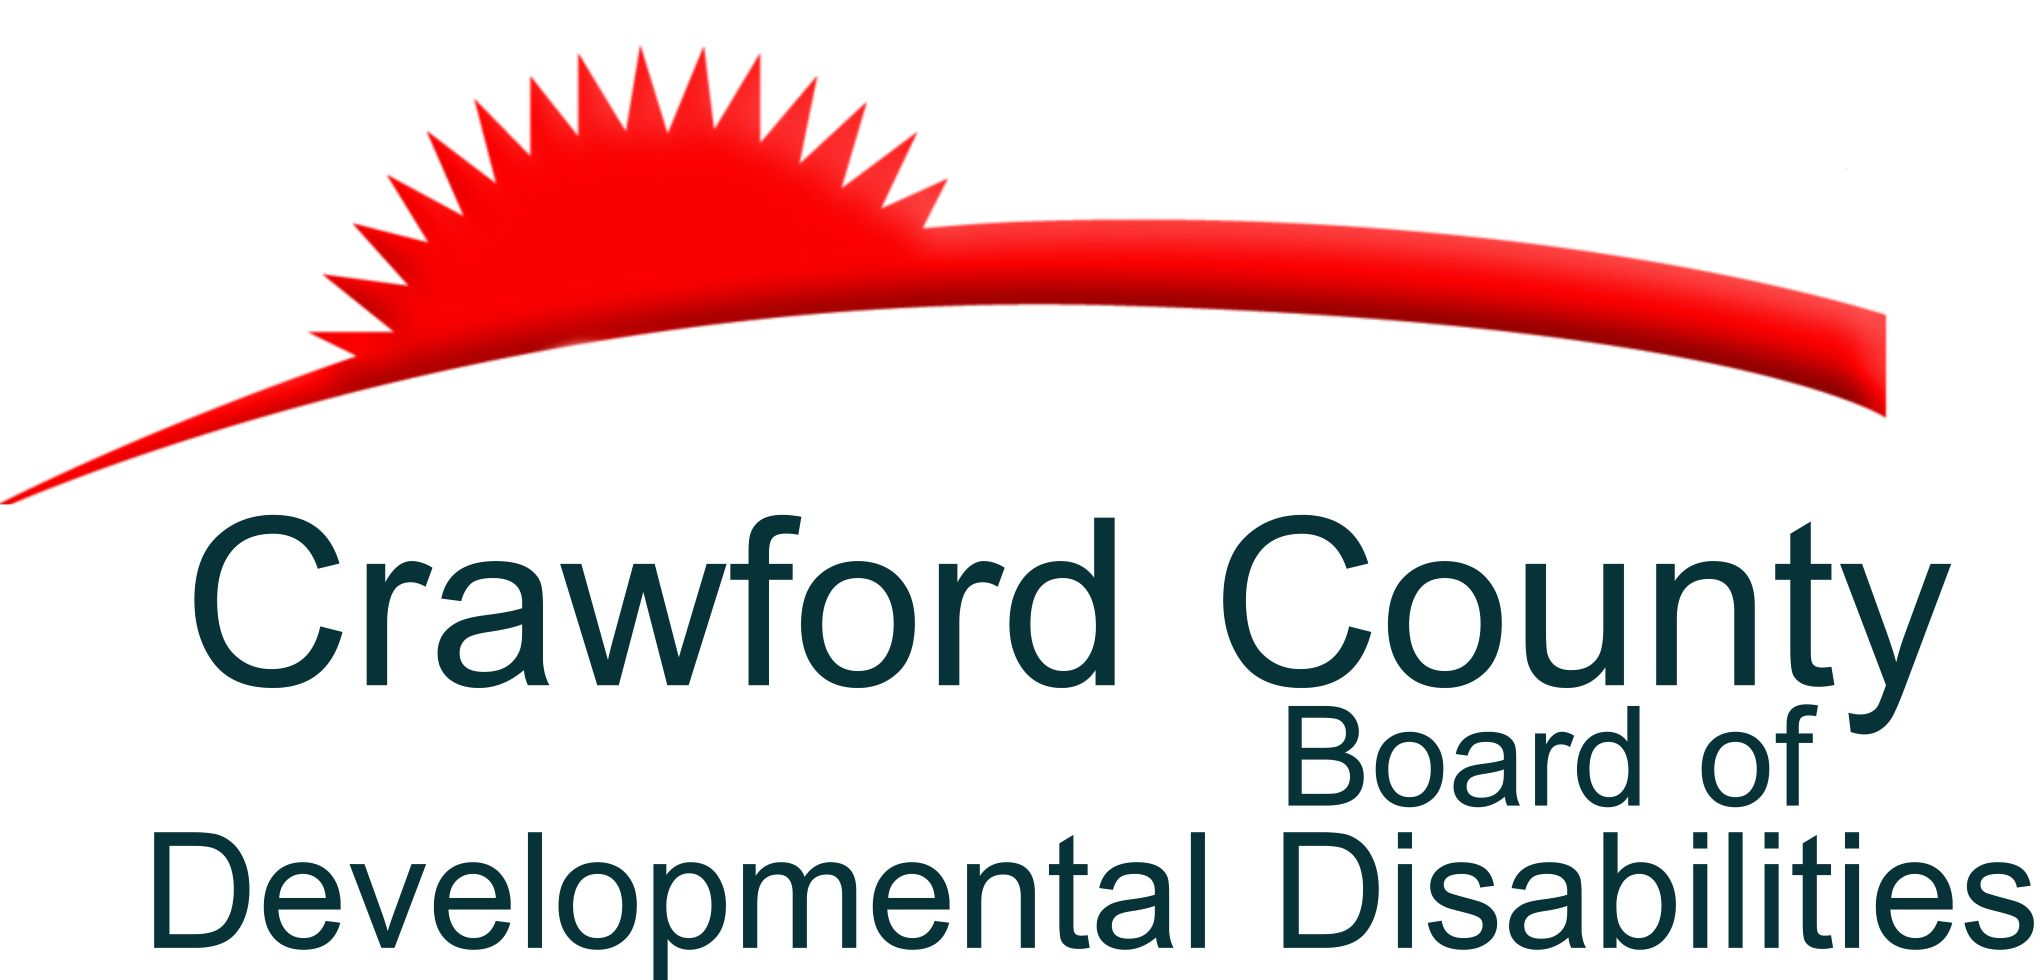 Crawford County Board of Developmental Disabilities